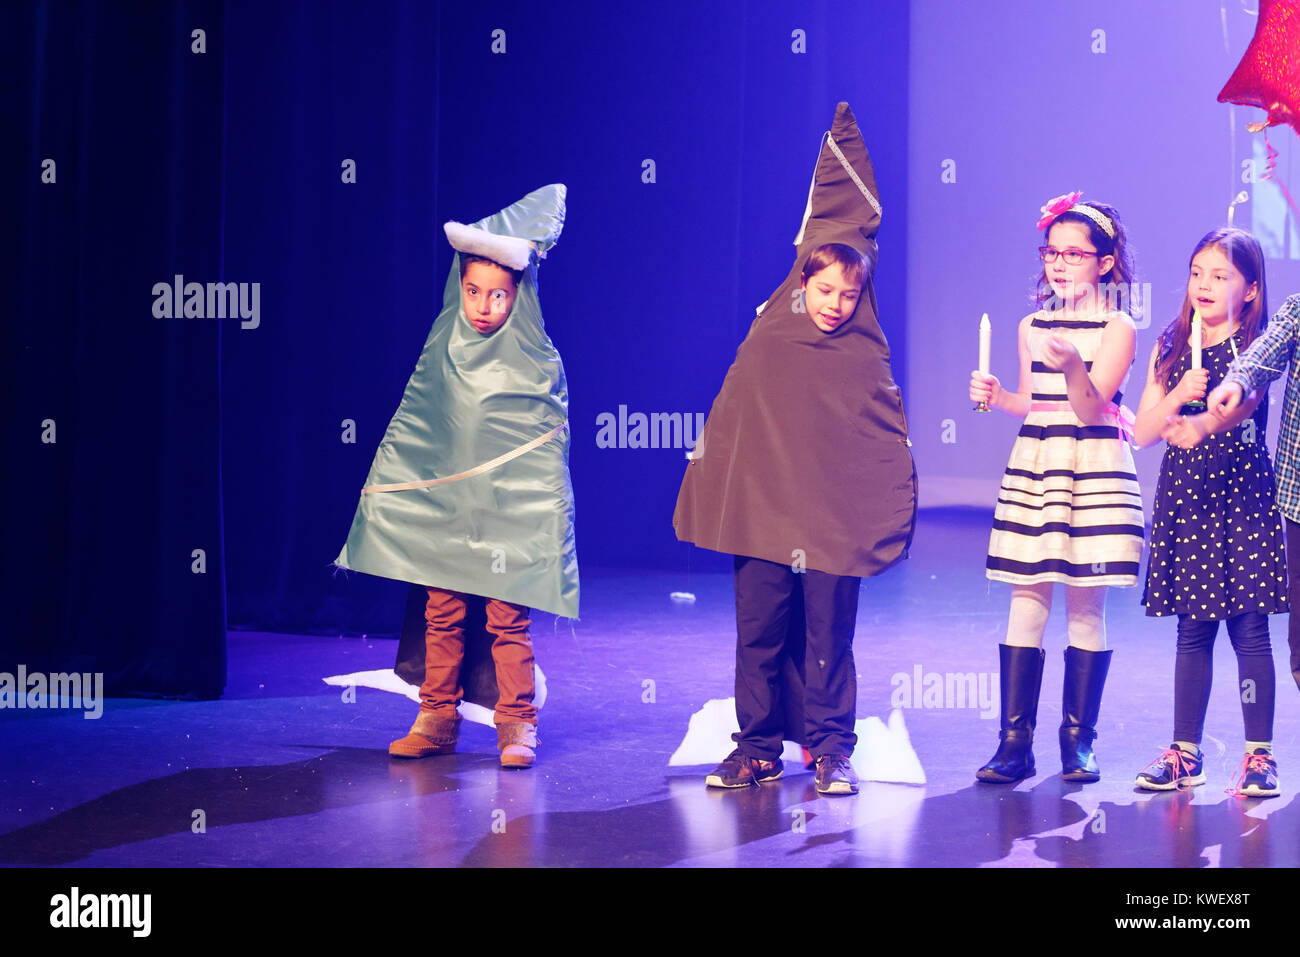 Children dressed as pine trees during their christmas show Stock Photo